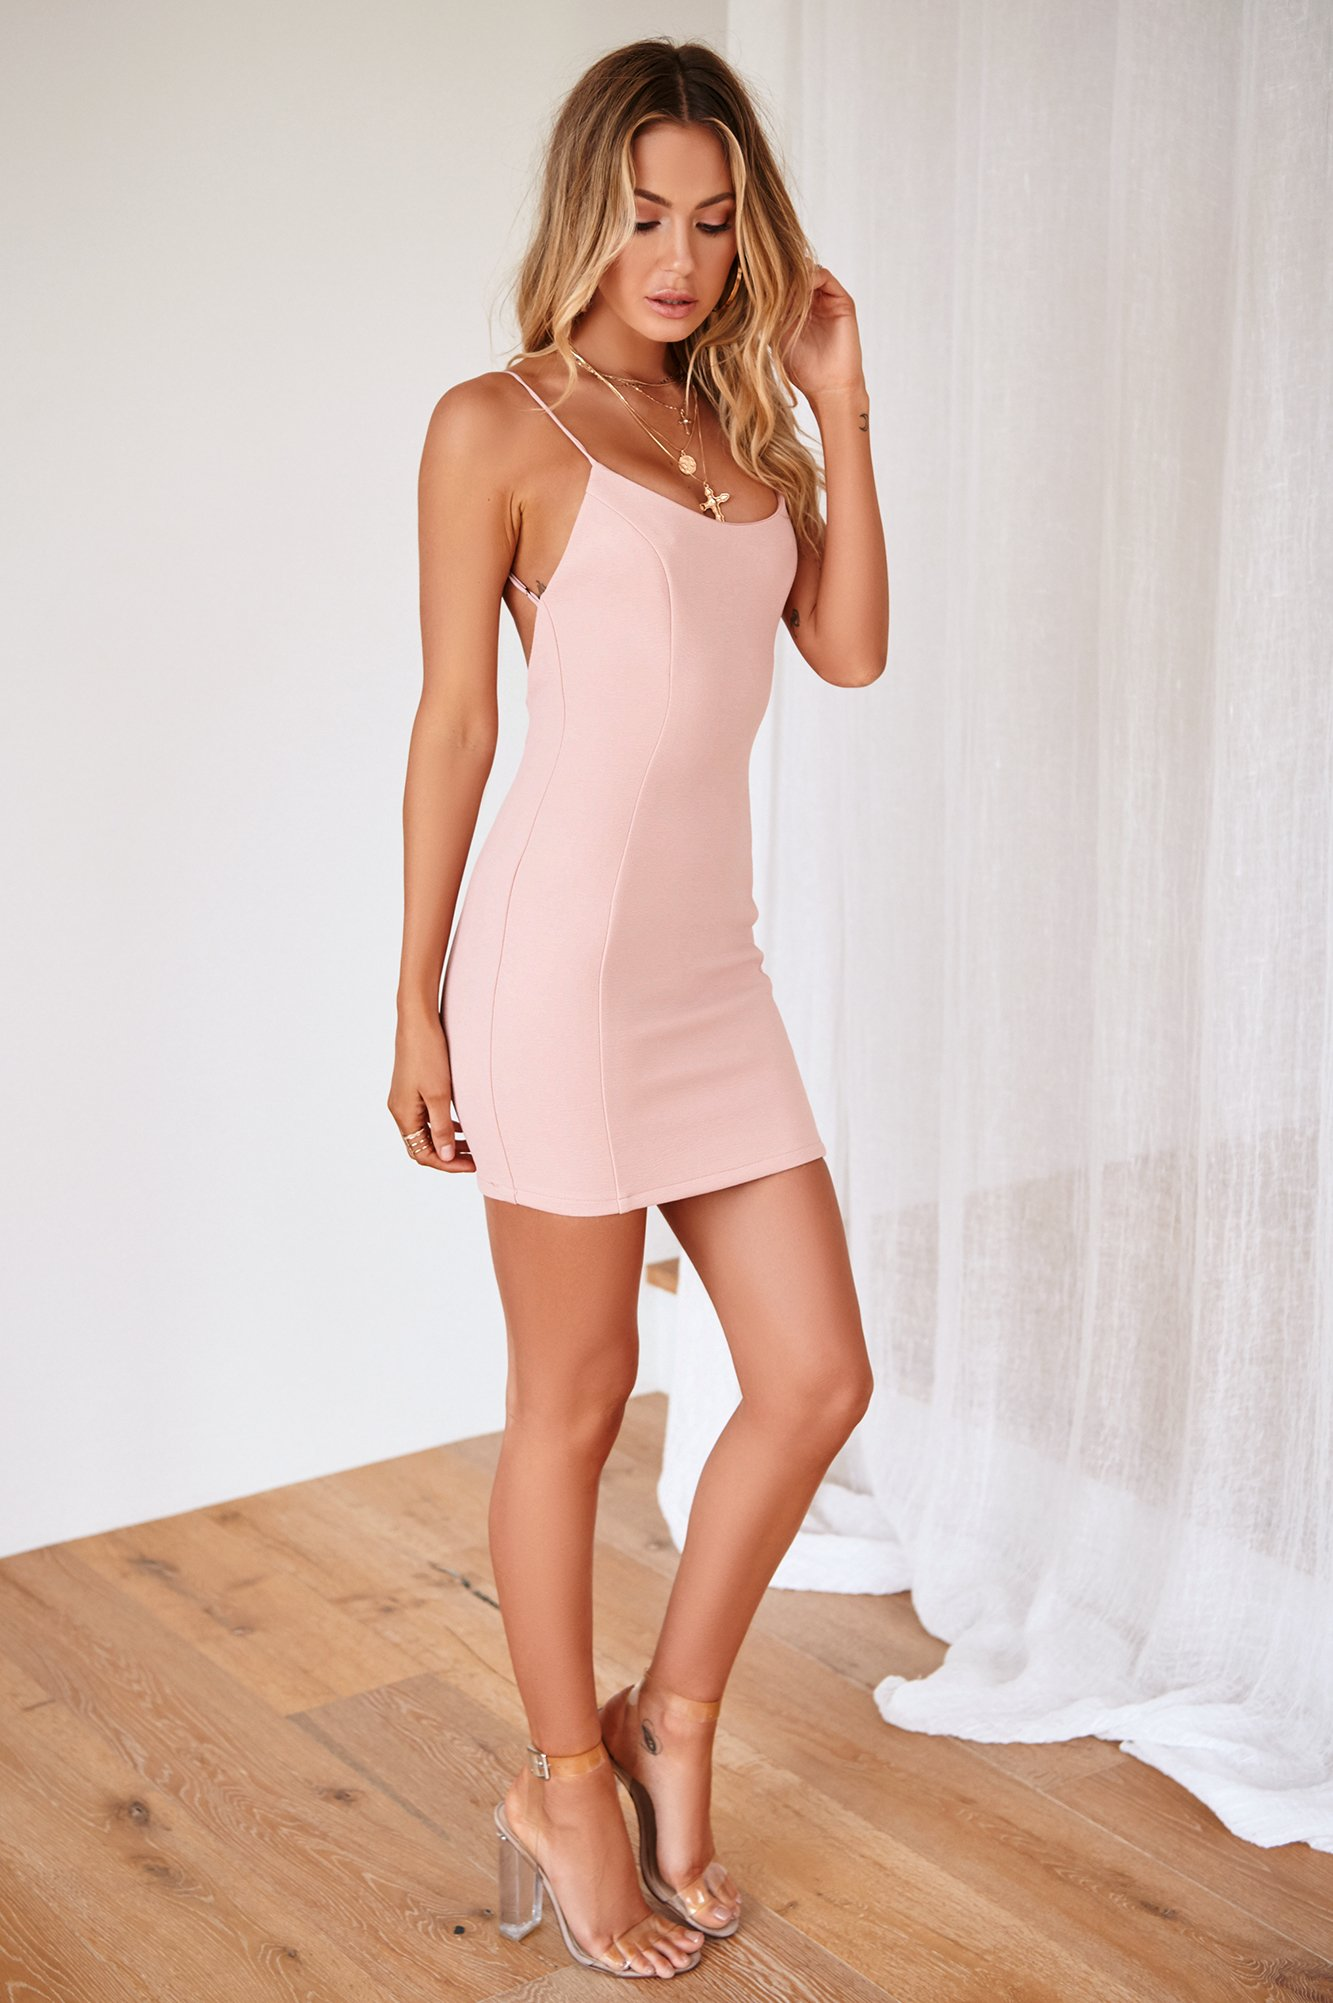 All About You Dress (Blush)